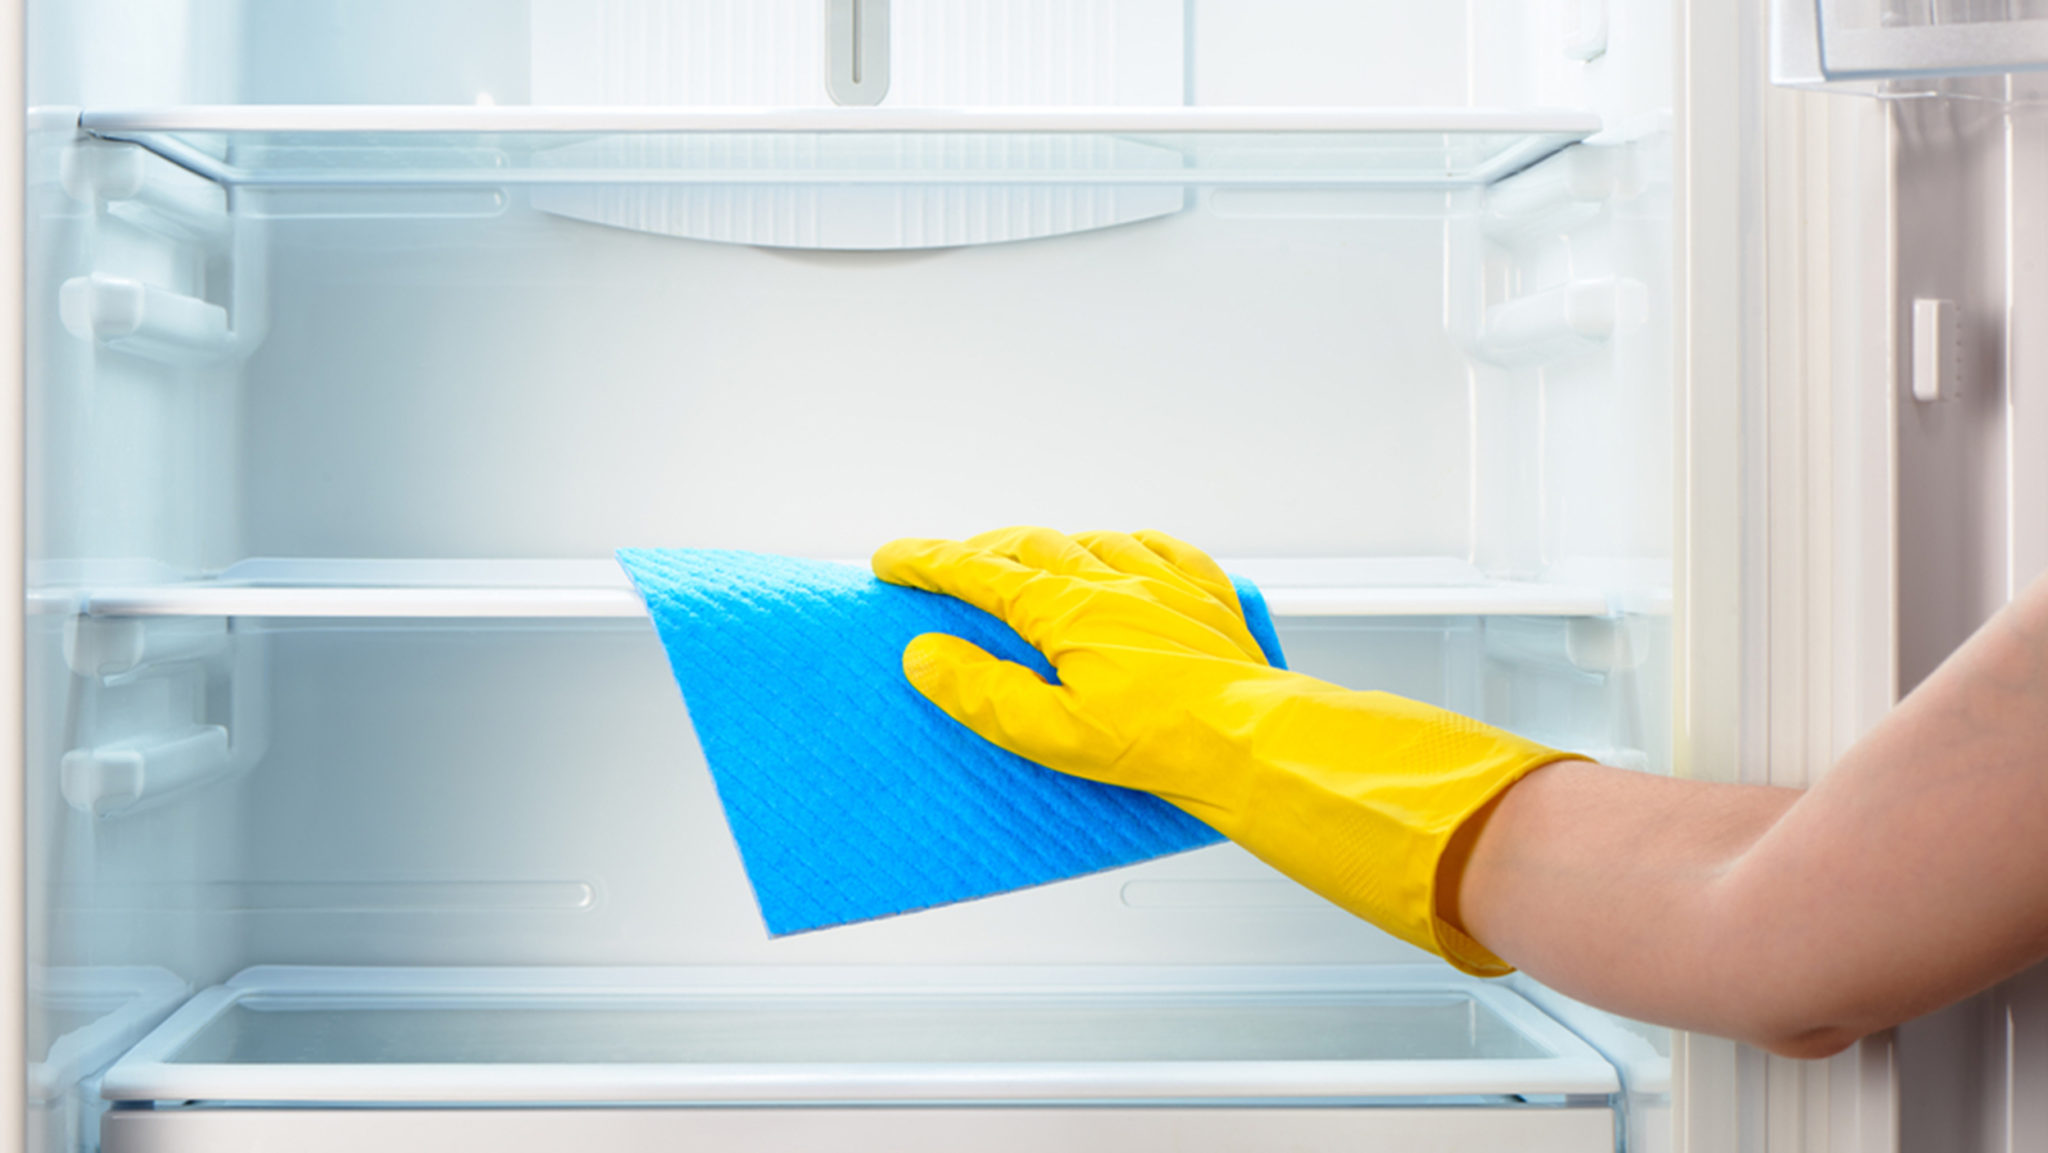 Woman's hand in yellow rubber protective glove cleaning white open empty refrigerator with blue rag ; Shutterstock ID 303843791; PO: TODAY.com